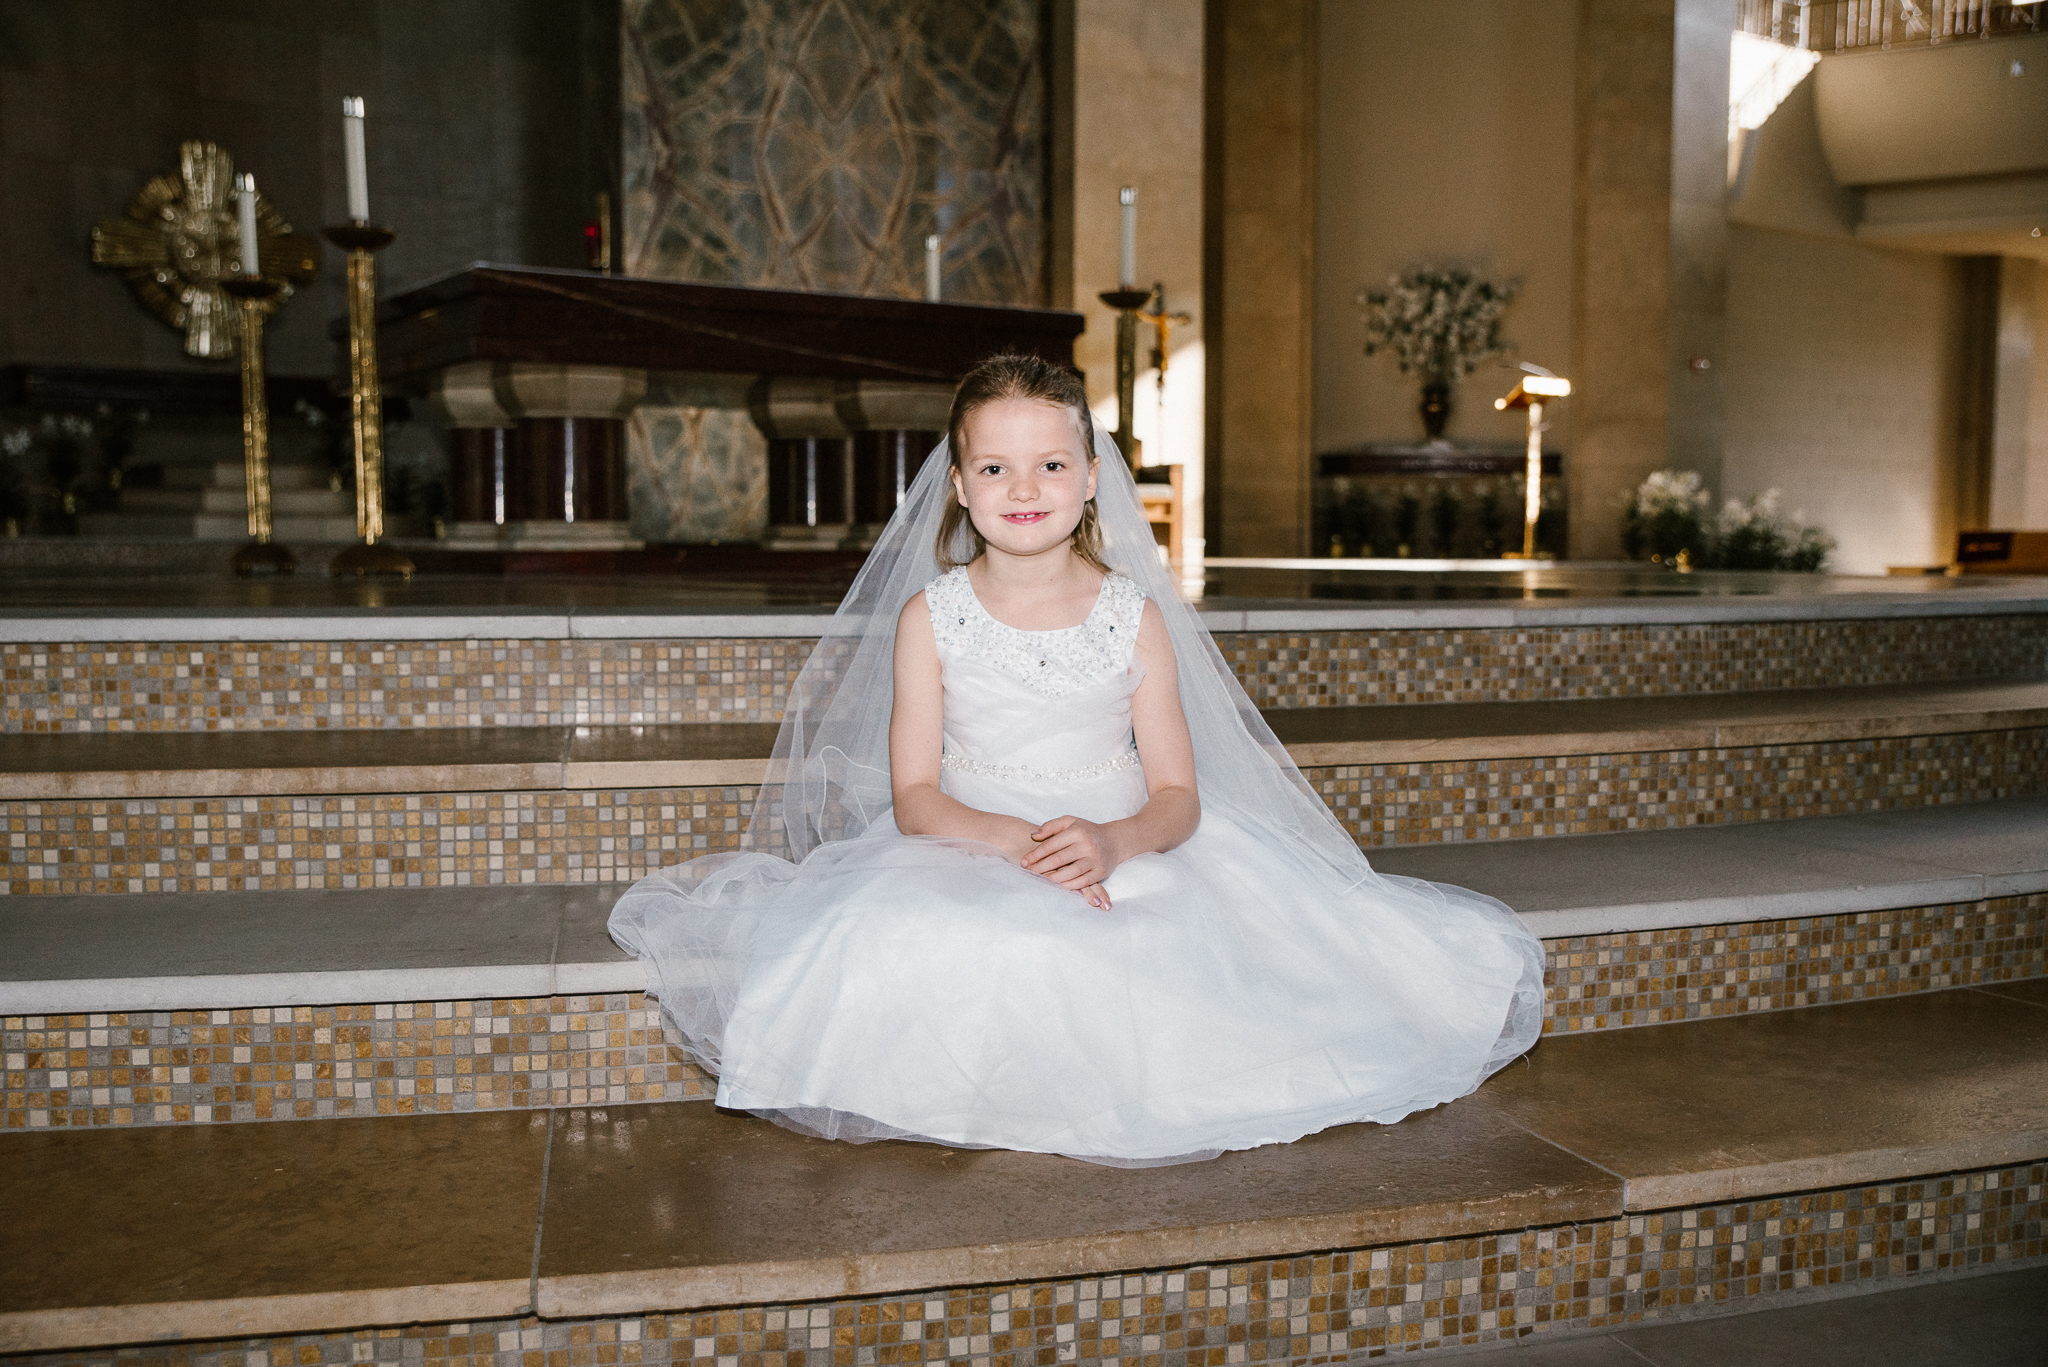 First Communion Catholic Photographer_First Communion Austin Texas_Round Rock Photographer_Emily Ingalls Photography_Austin Photographer_Pflugerville Photographer_Georgetown Photographer-10.jpg